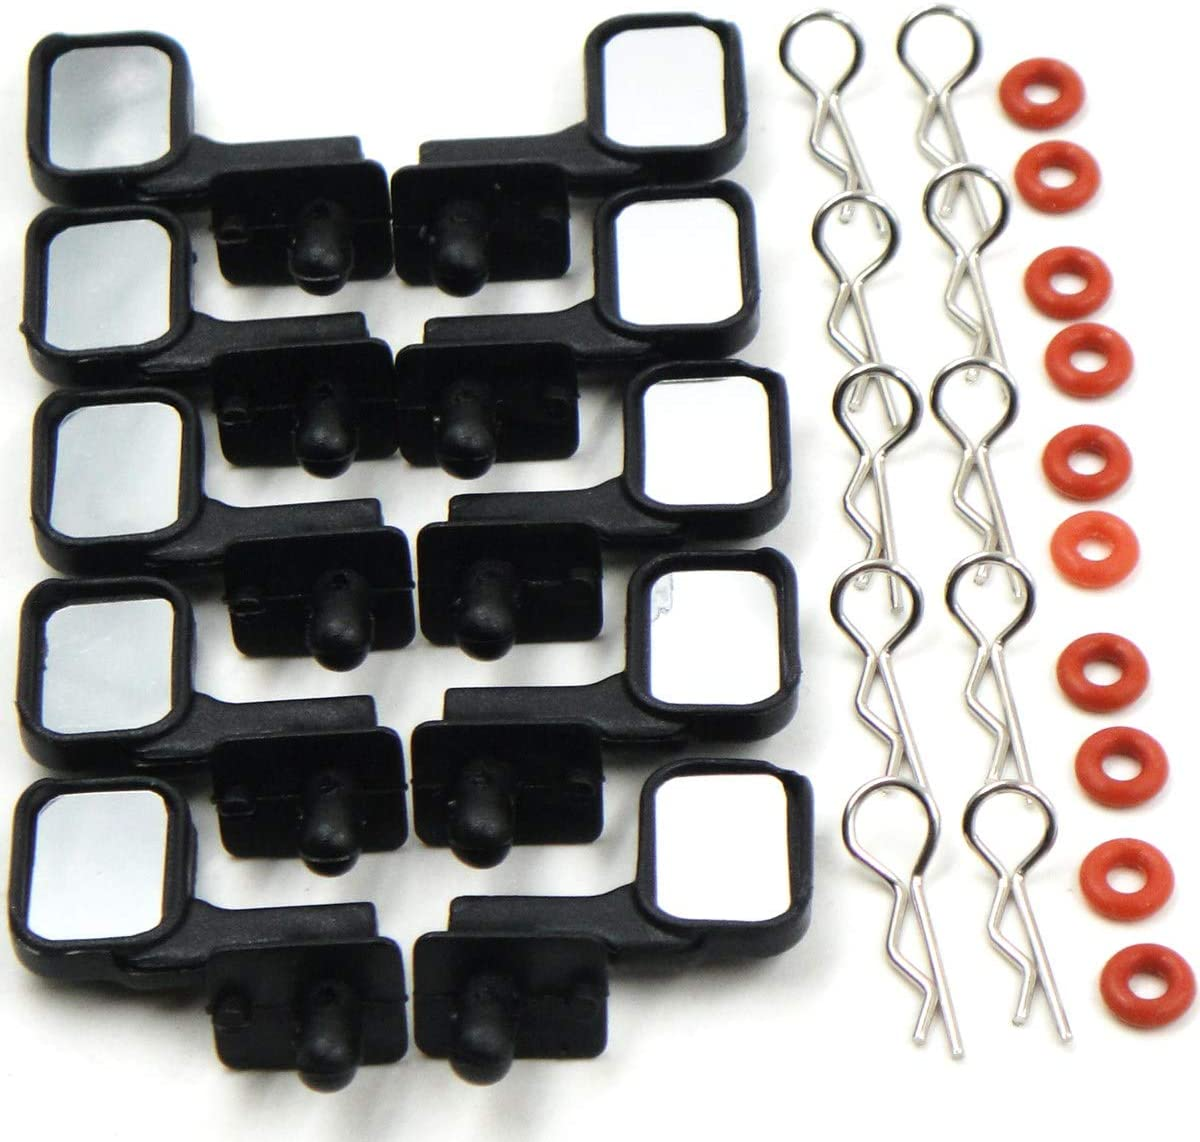 hobbysoul 5 Sets 1//10 Side Rear Mirrors Rearview Mirrors for 1:10 RC Rock Crawler Truck Body Shell Cover Upgrade